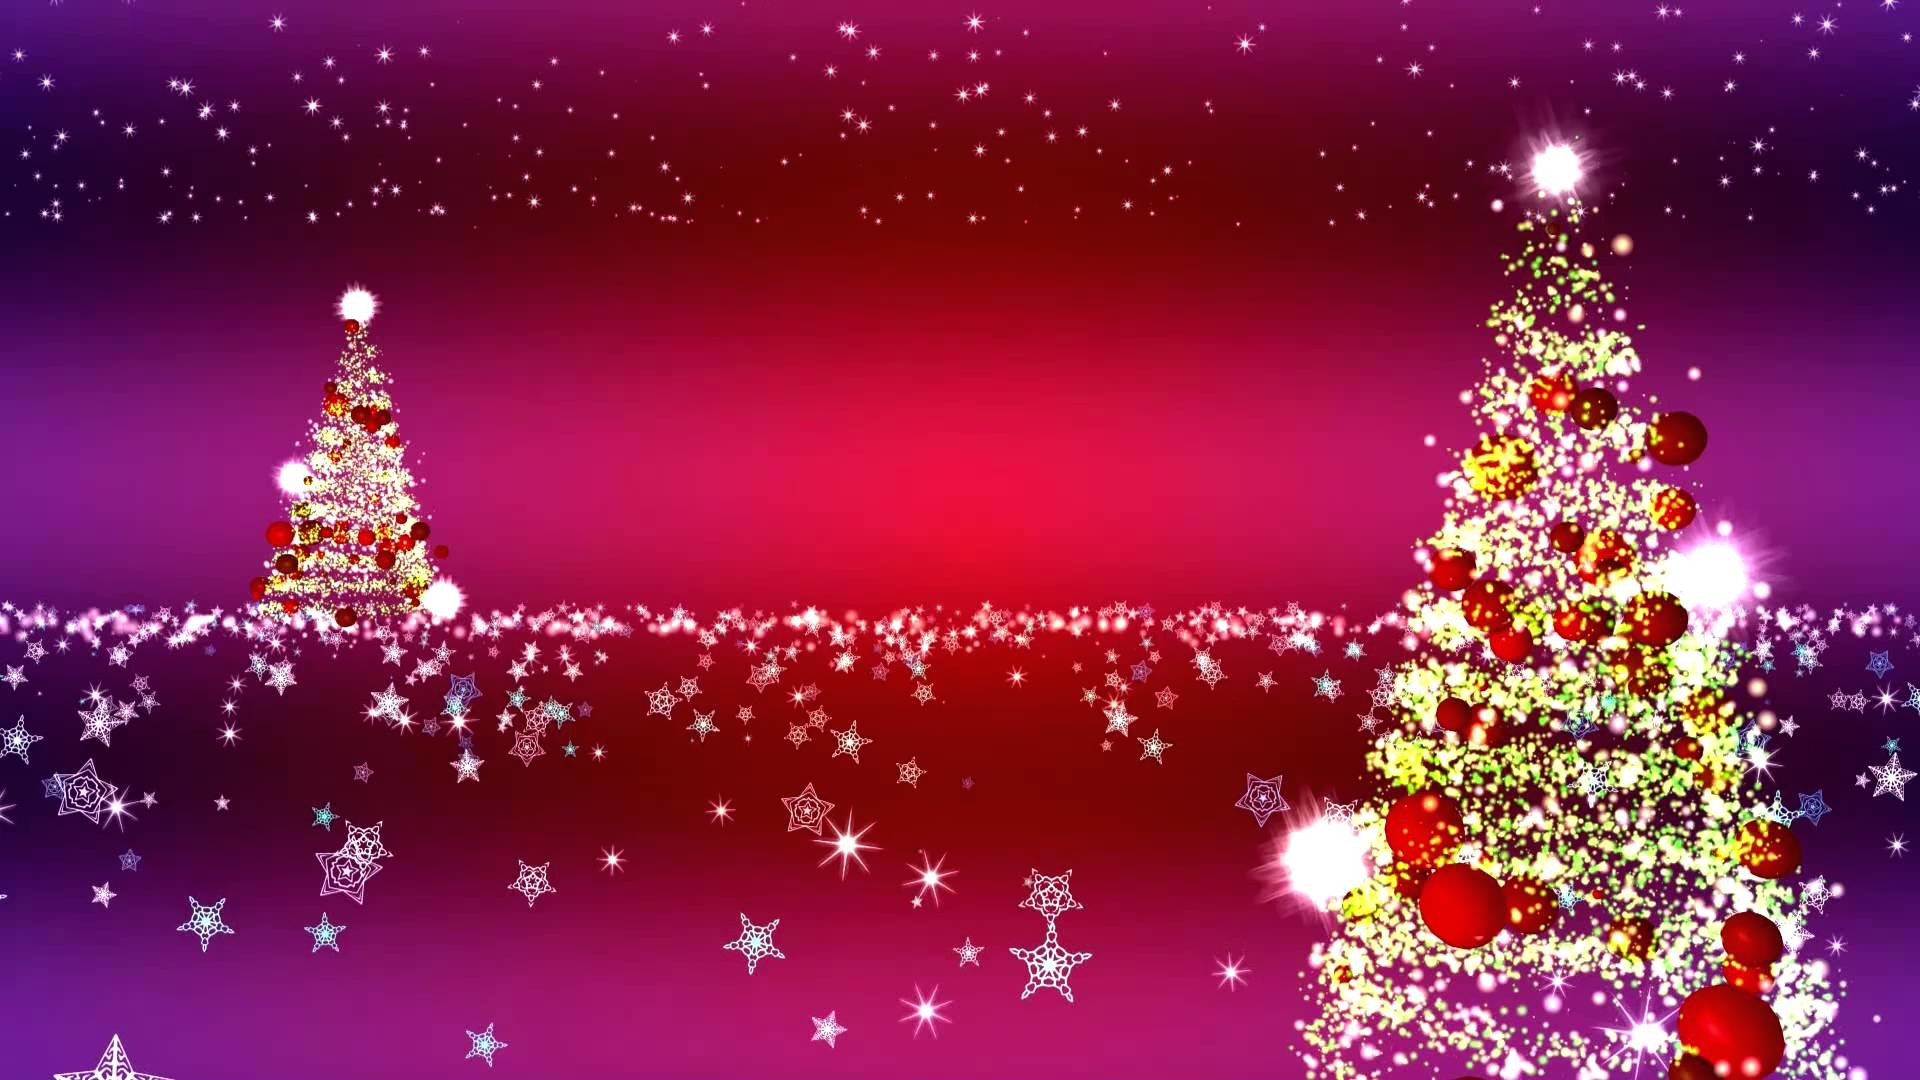 1920x1080 2015 Christmas background hd wallpapers, images, photos, pictures #3534